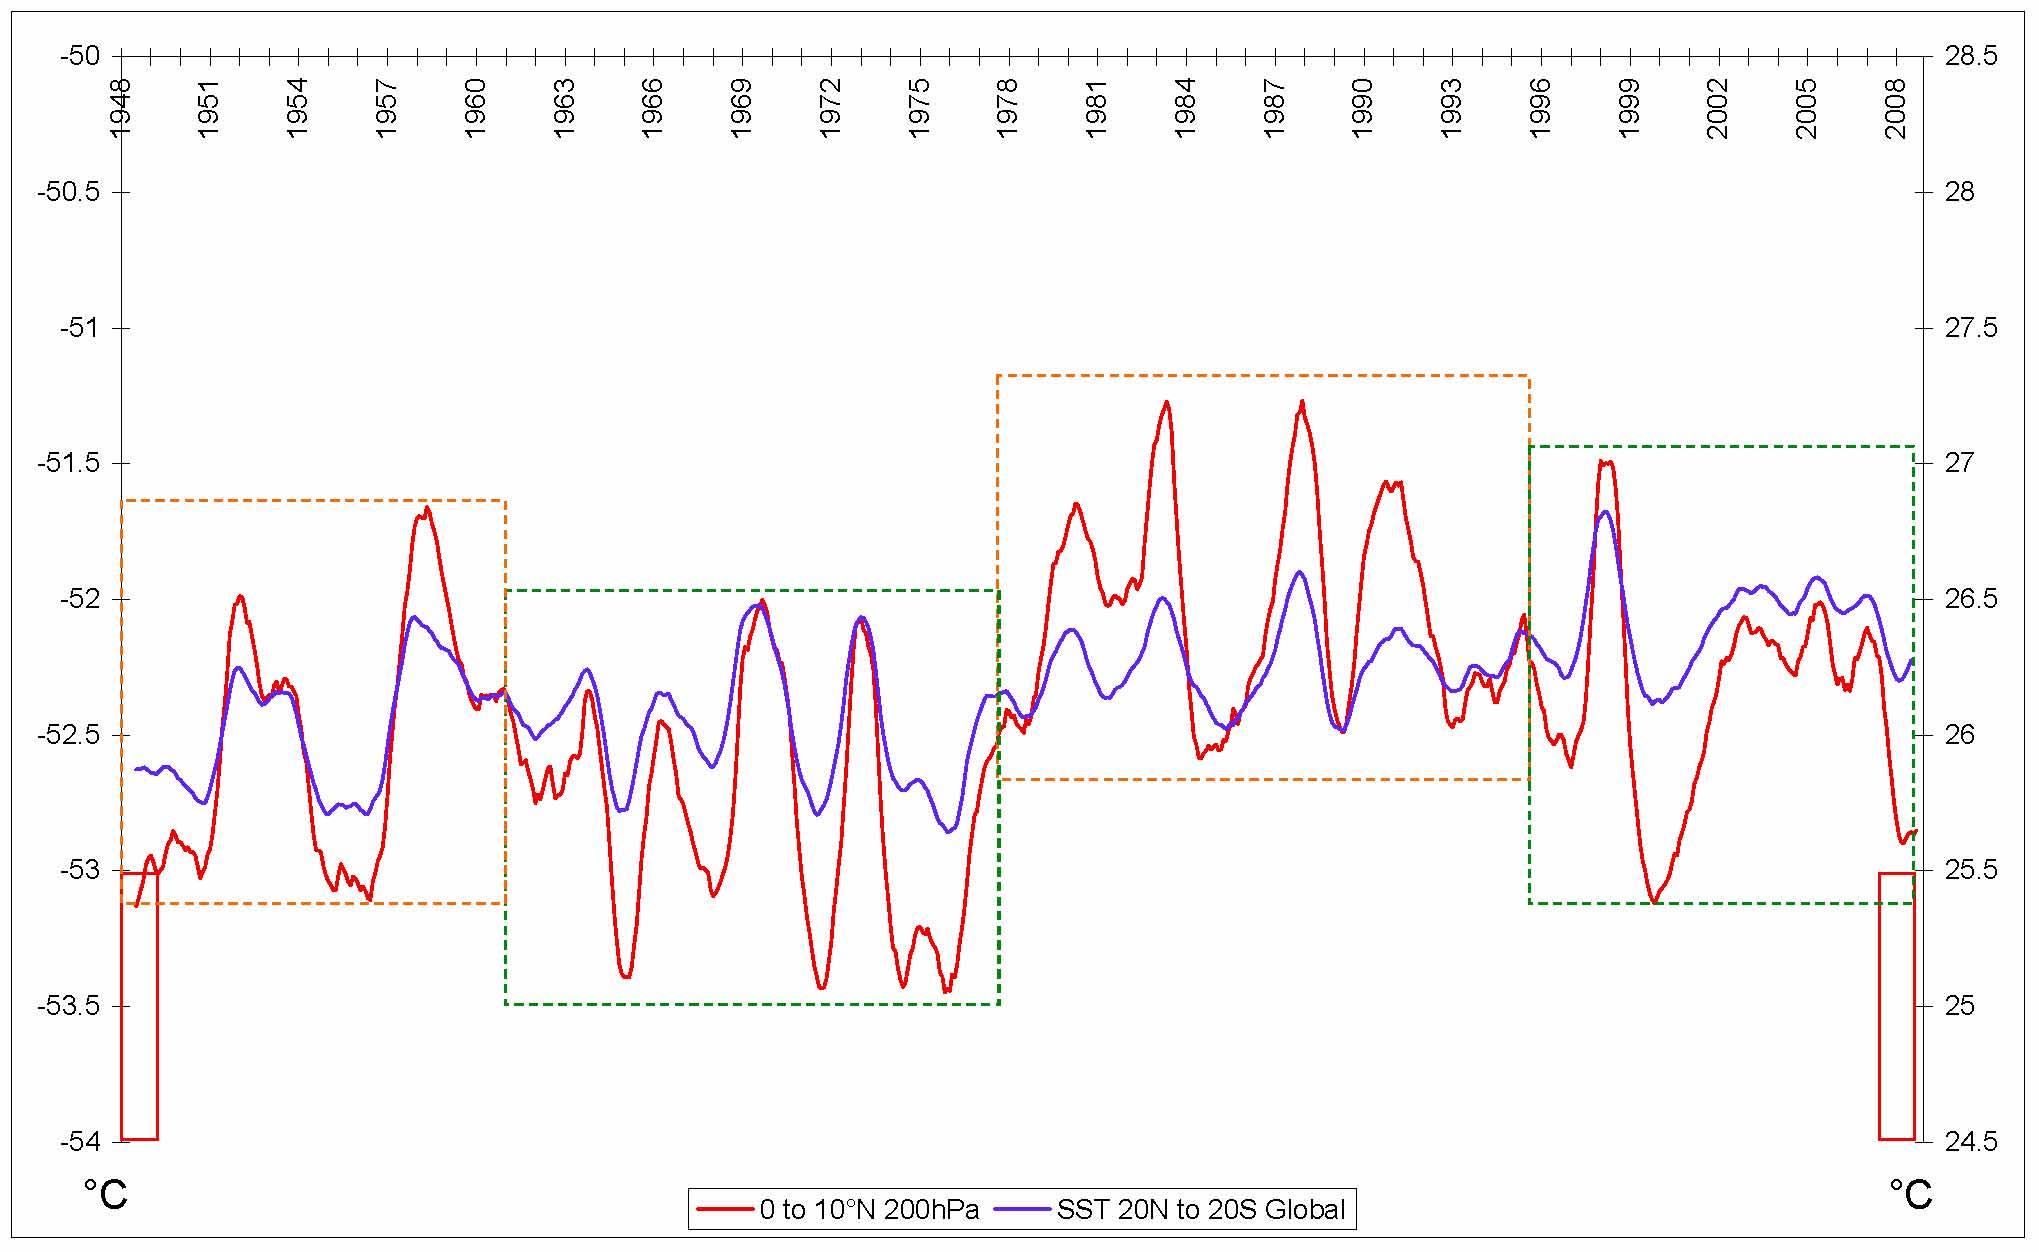 Fig. 9 Temperature at 200hPa in the upper troposphere and at the surface